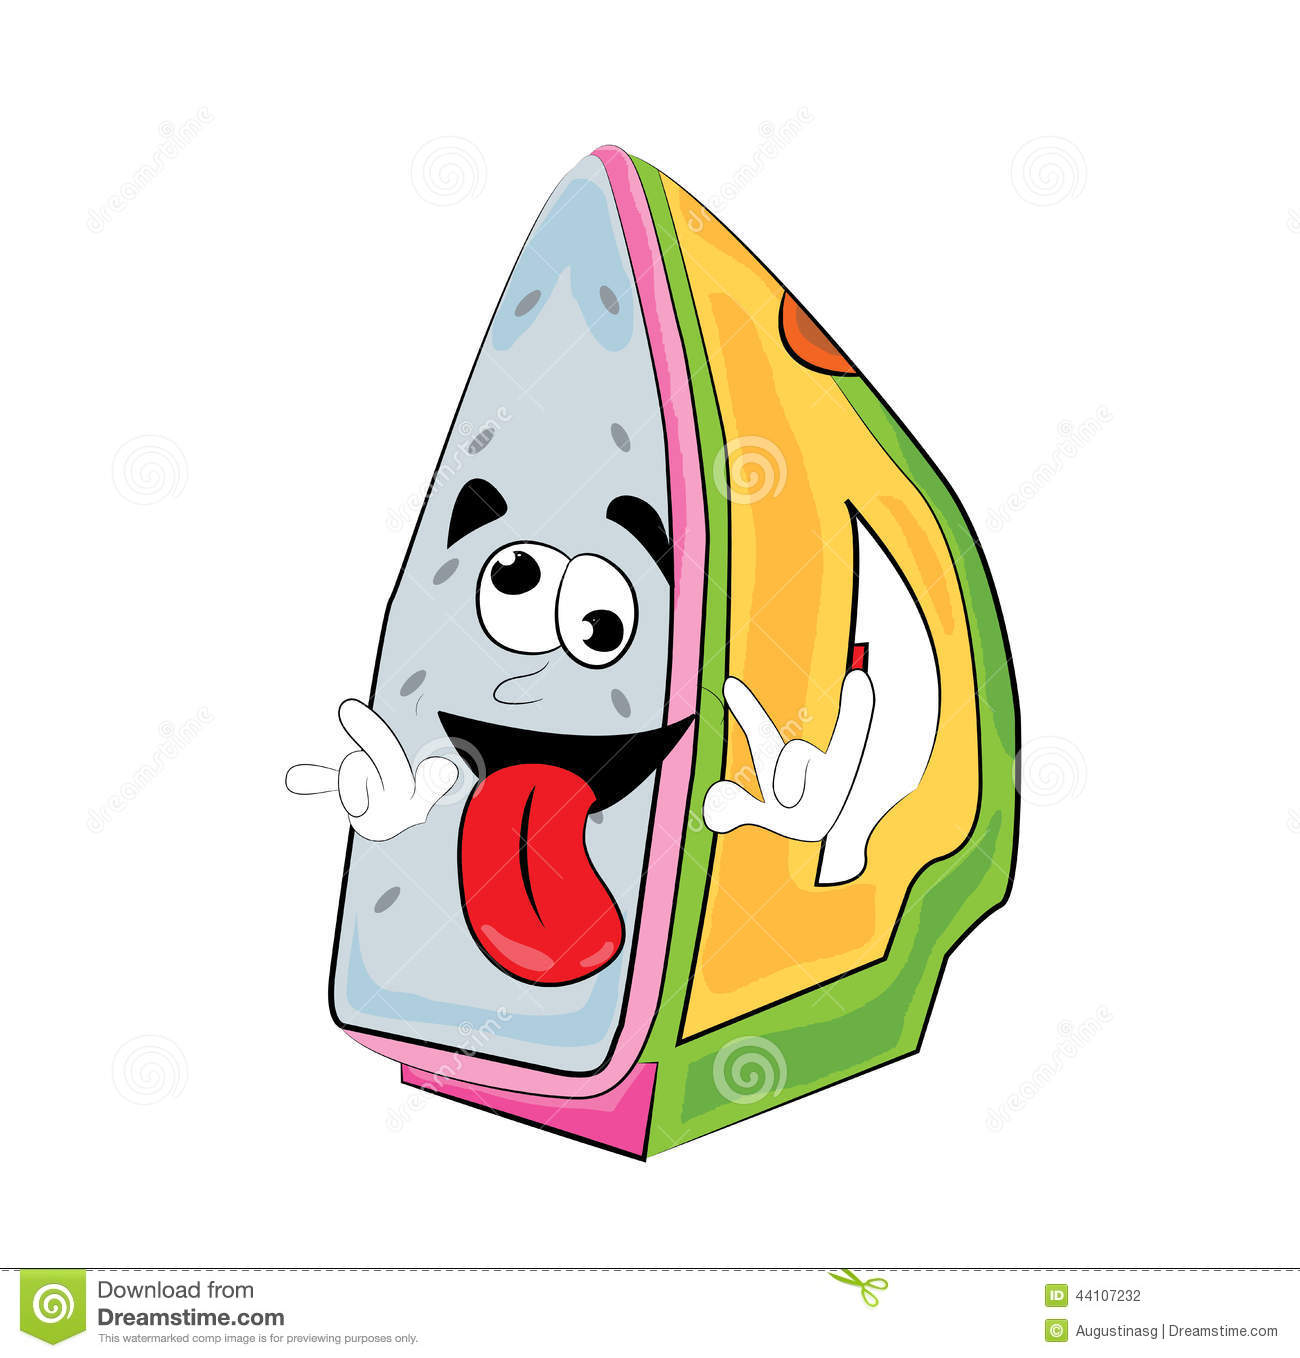 Crazy Iron Cartoon Stock Illustration - Image: 44107232